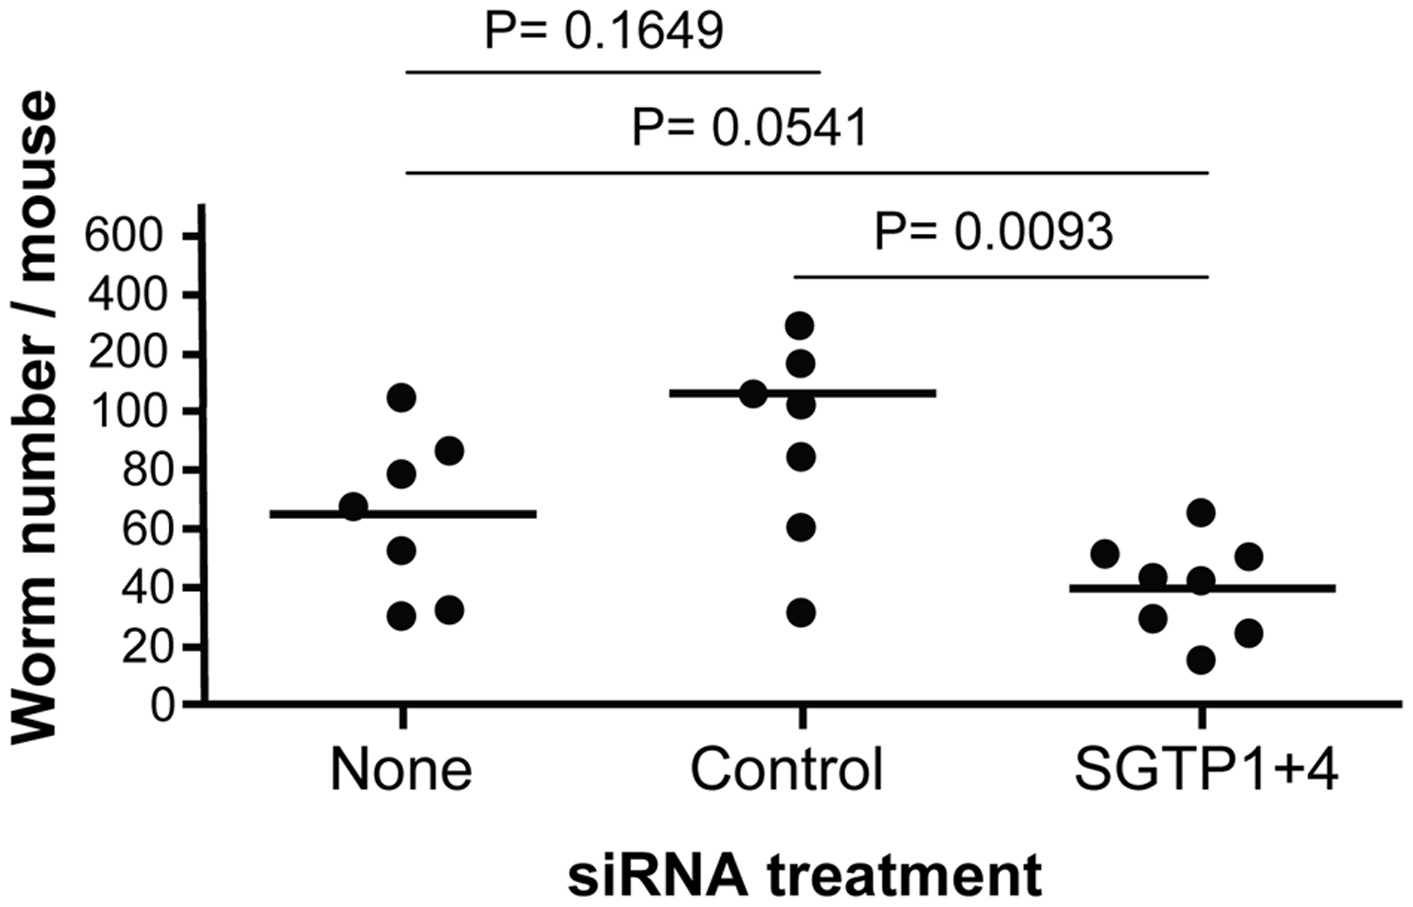 Schistosome survival <i>in vivo</i> in mice following treatment with SGTP siRNA.